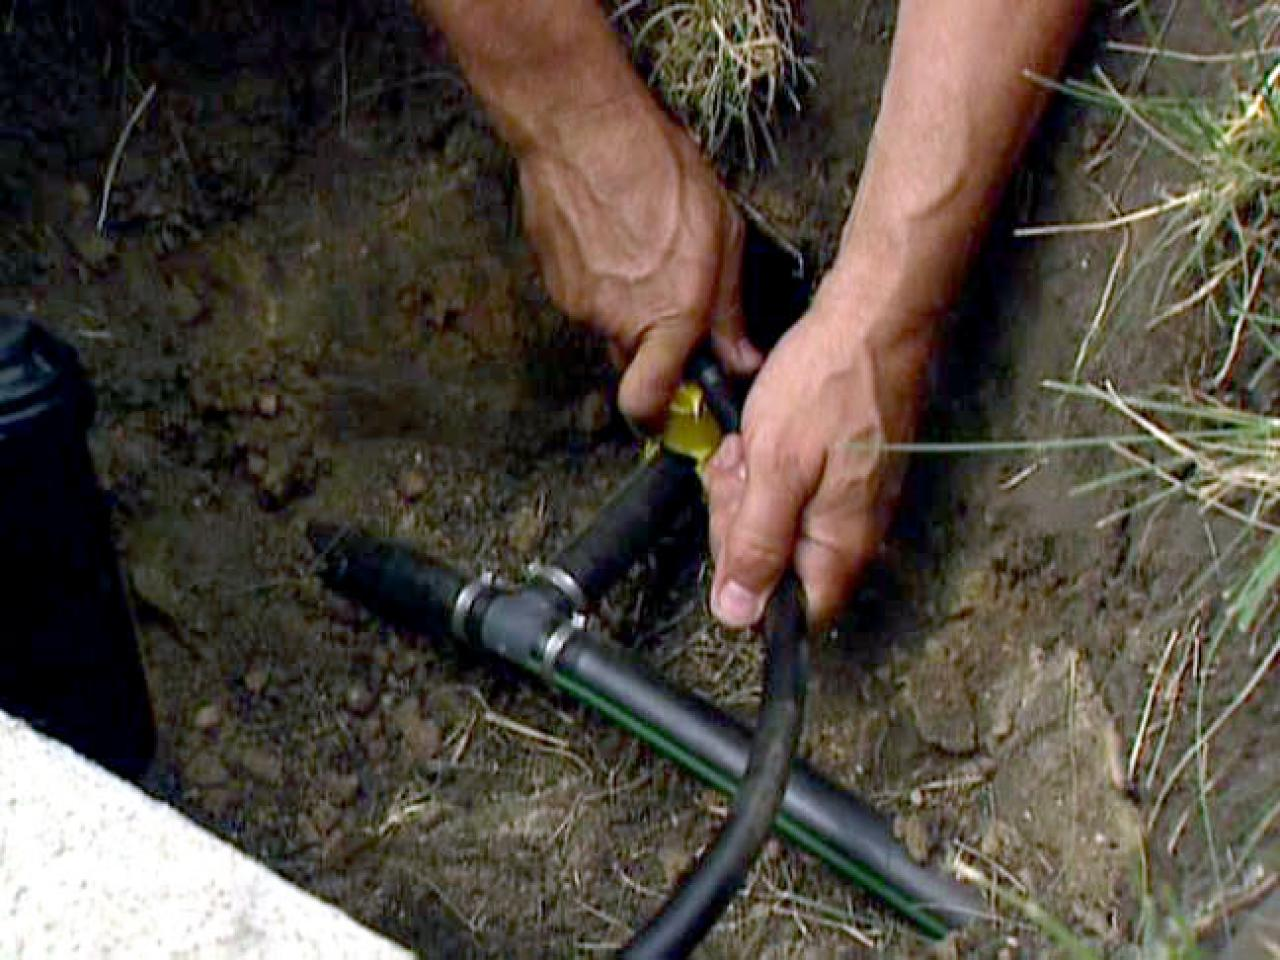 How to Install an In-Ground Sprinkler System | how-tos | DIY